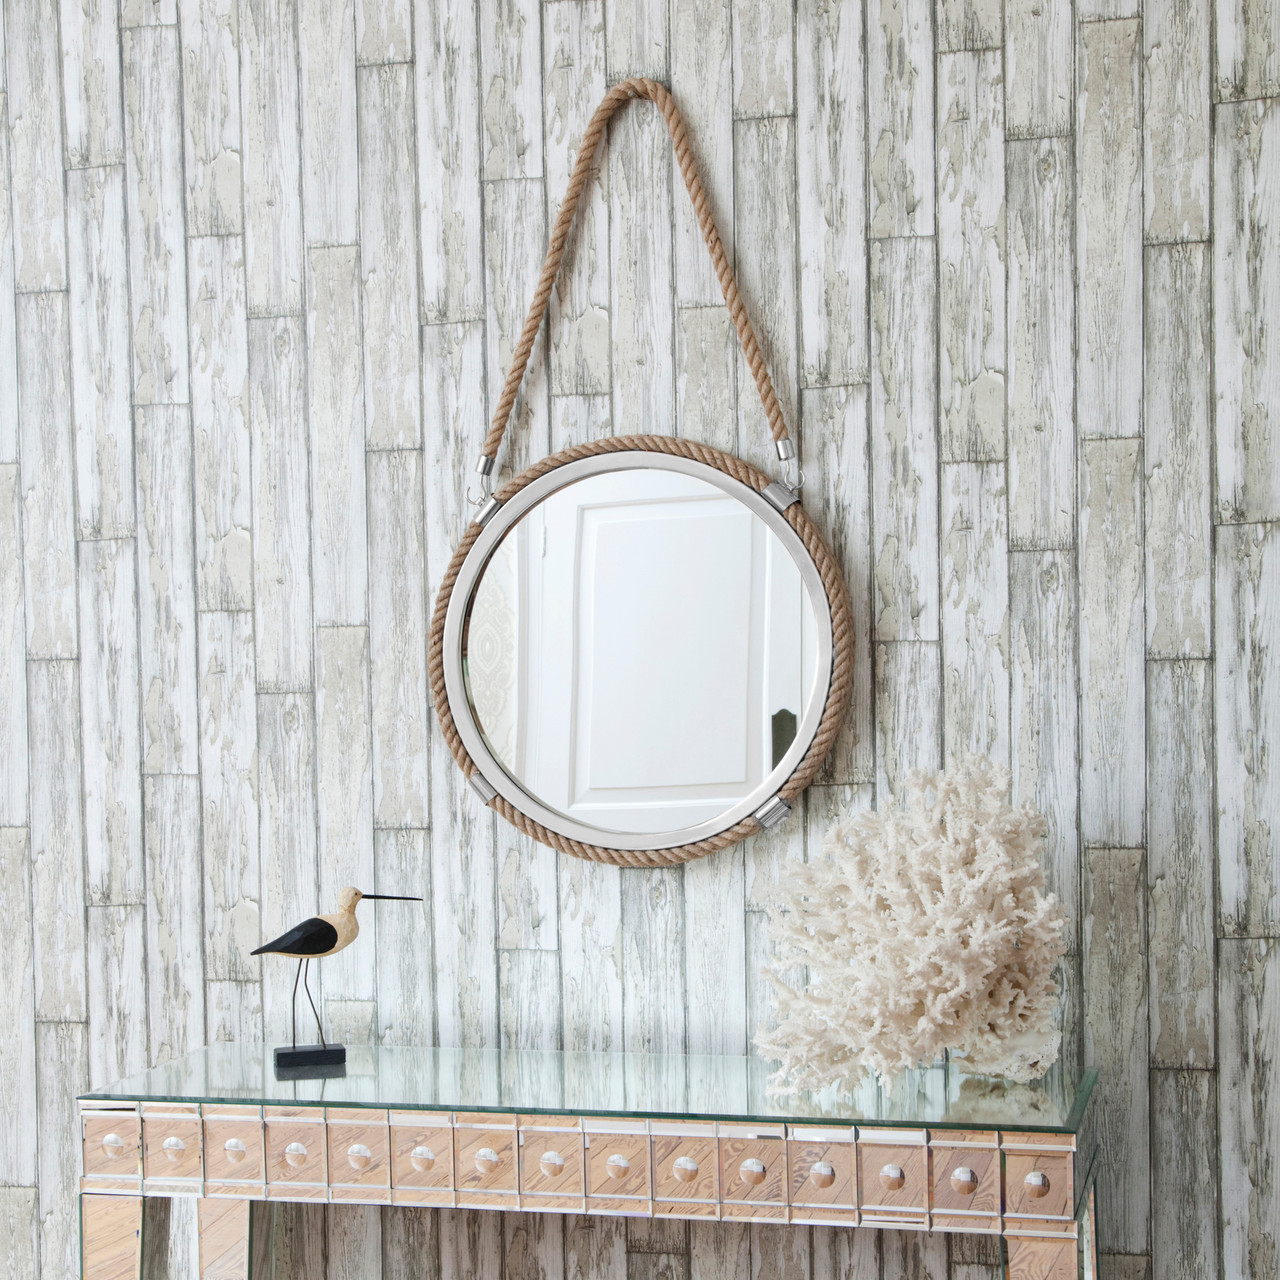 Image of Round Rope Mirror With Rope Hanger